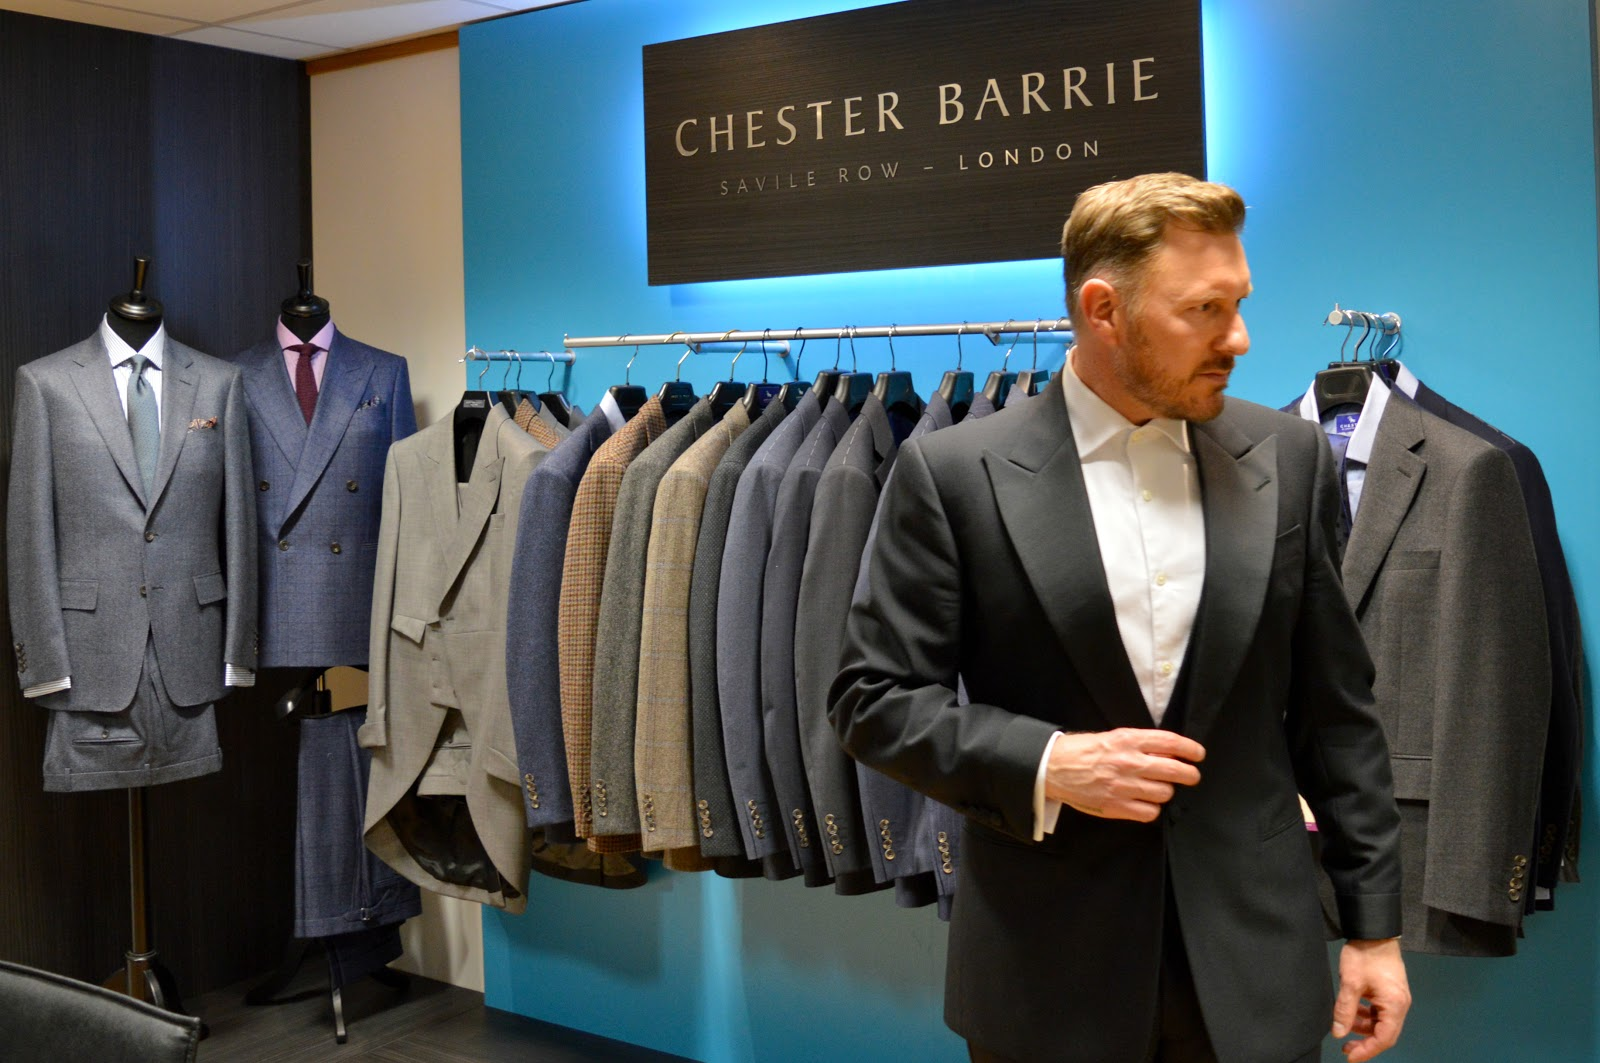 dfd9cd317529 Craig of That Dapper Chap gets fitted for a red carpet tuxedo by Chester  Barrie of Savile Row